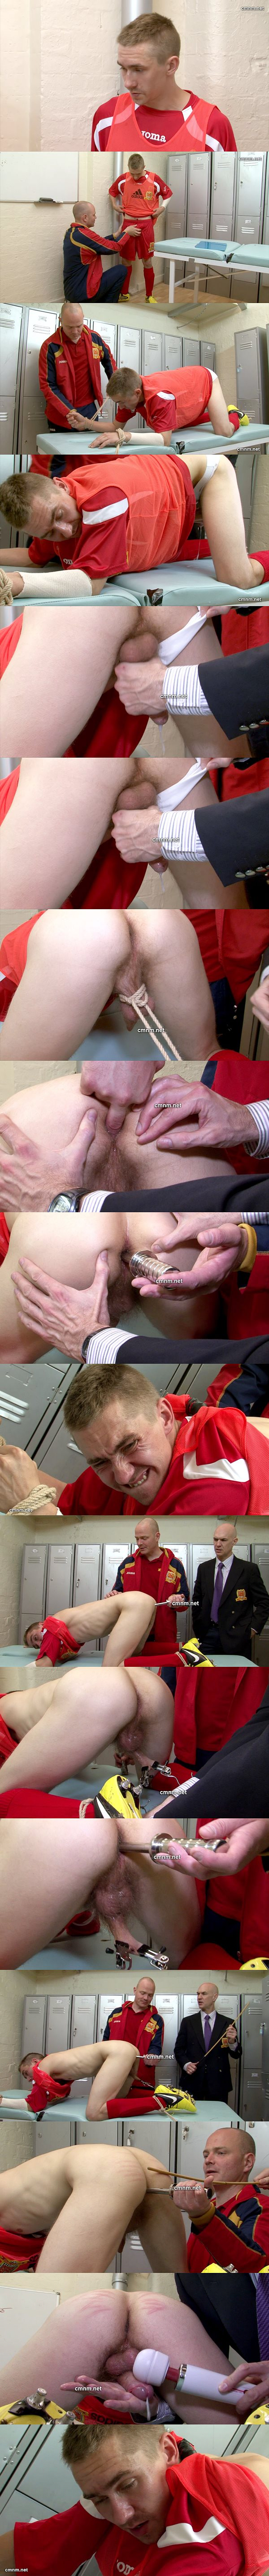 Hetero footballer Russell Coulter tied, gagged, fingered, dildo-fucked, flogged and jerked off at Cmnm 02